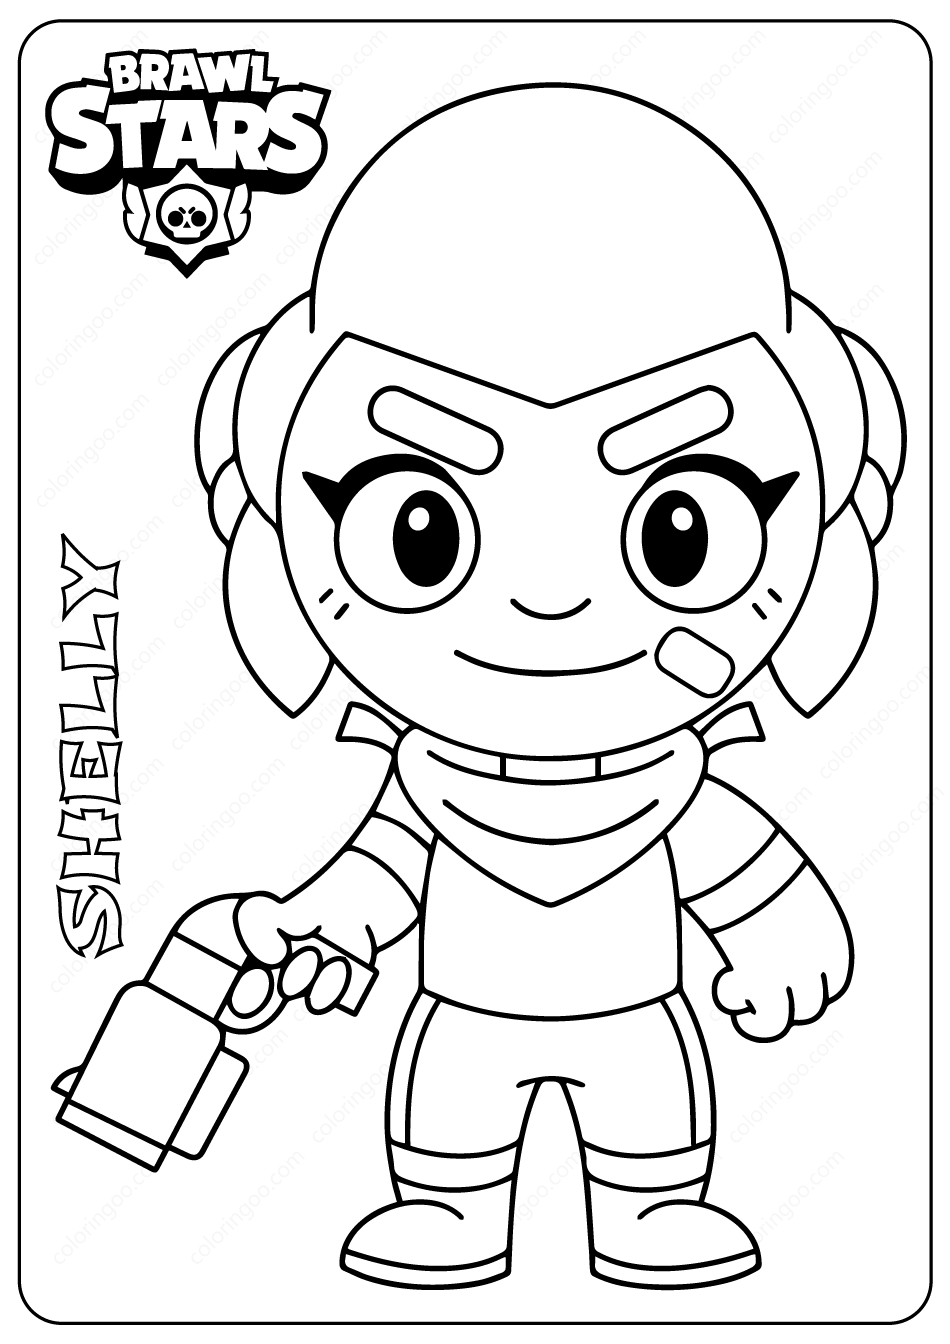 brawl star coloring pin on draw it cute coloring pages coloring brawl star